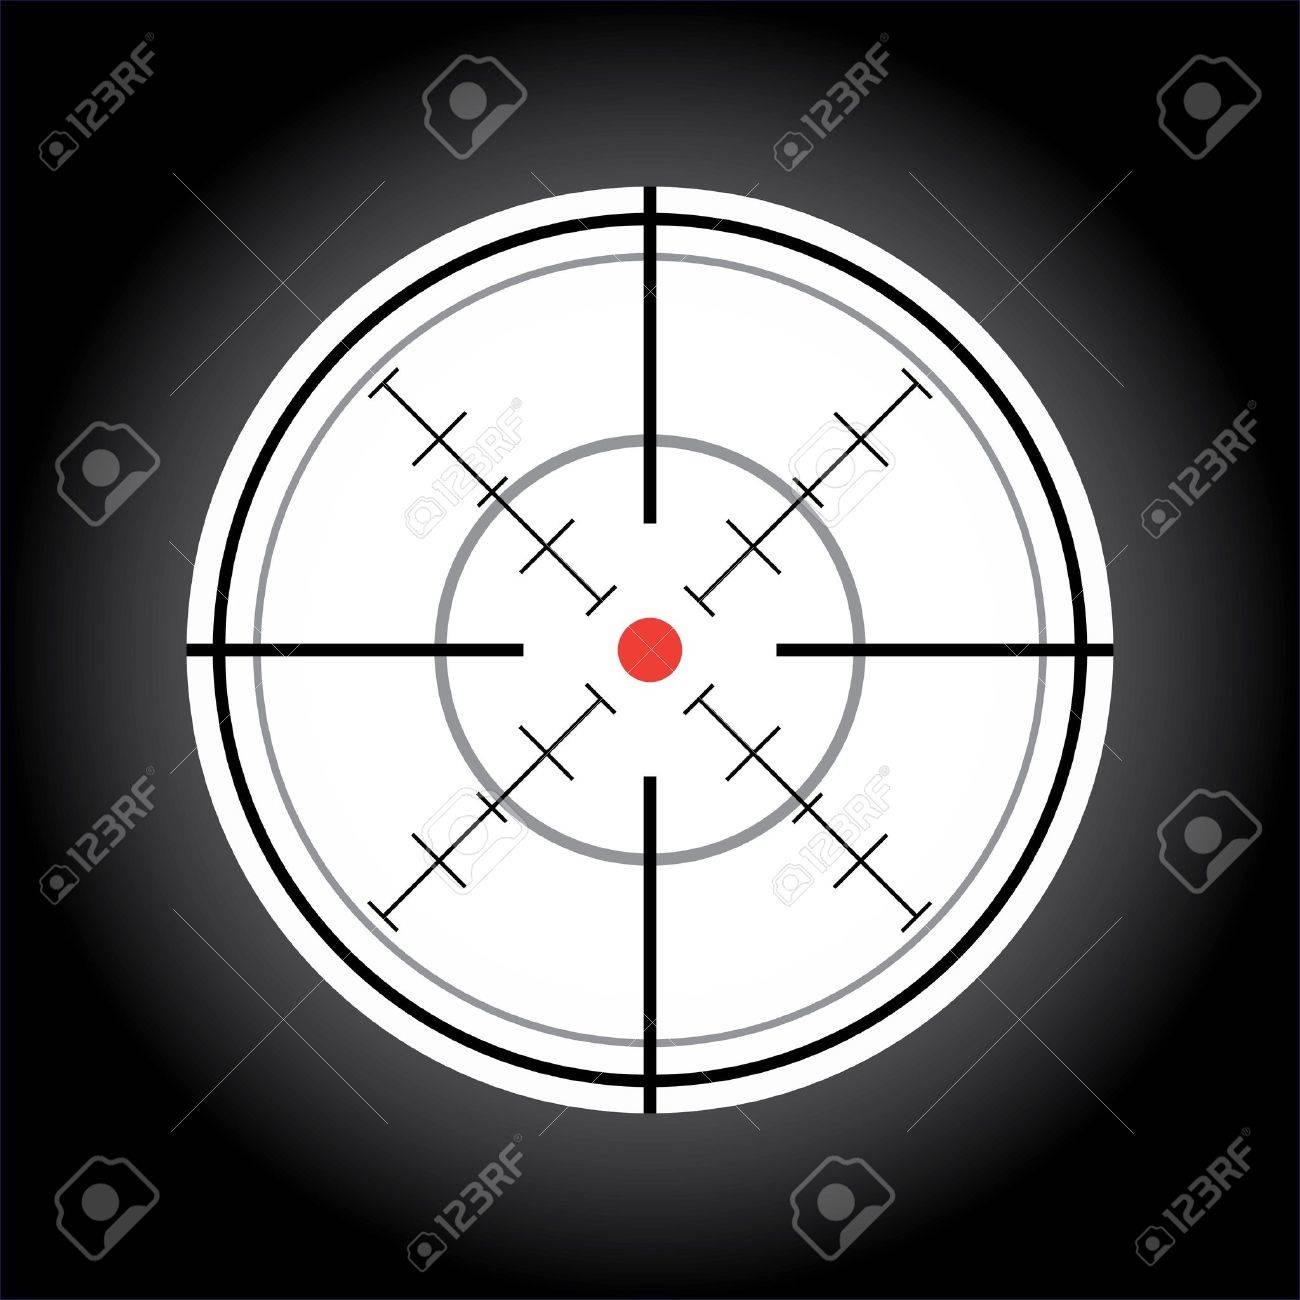 crosshair with red dot - illustration Stock Vector - 11496359